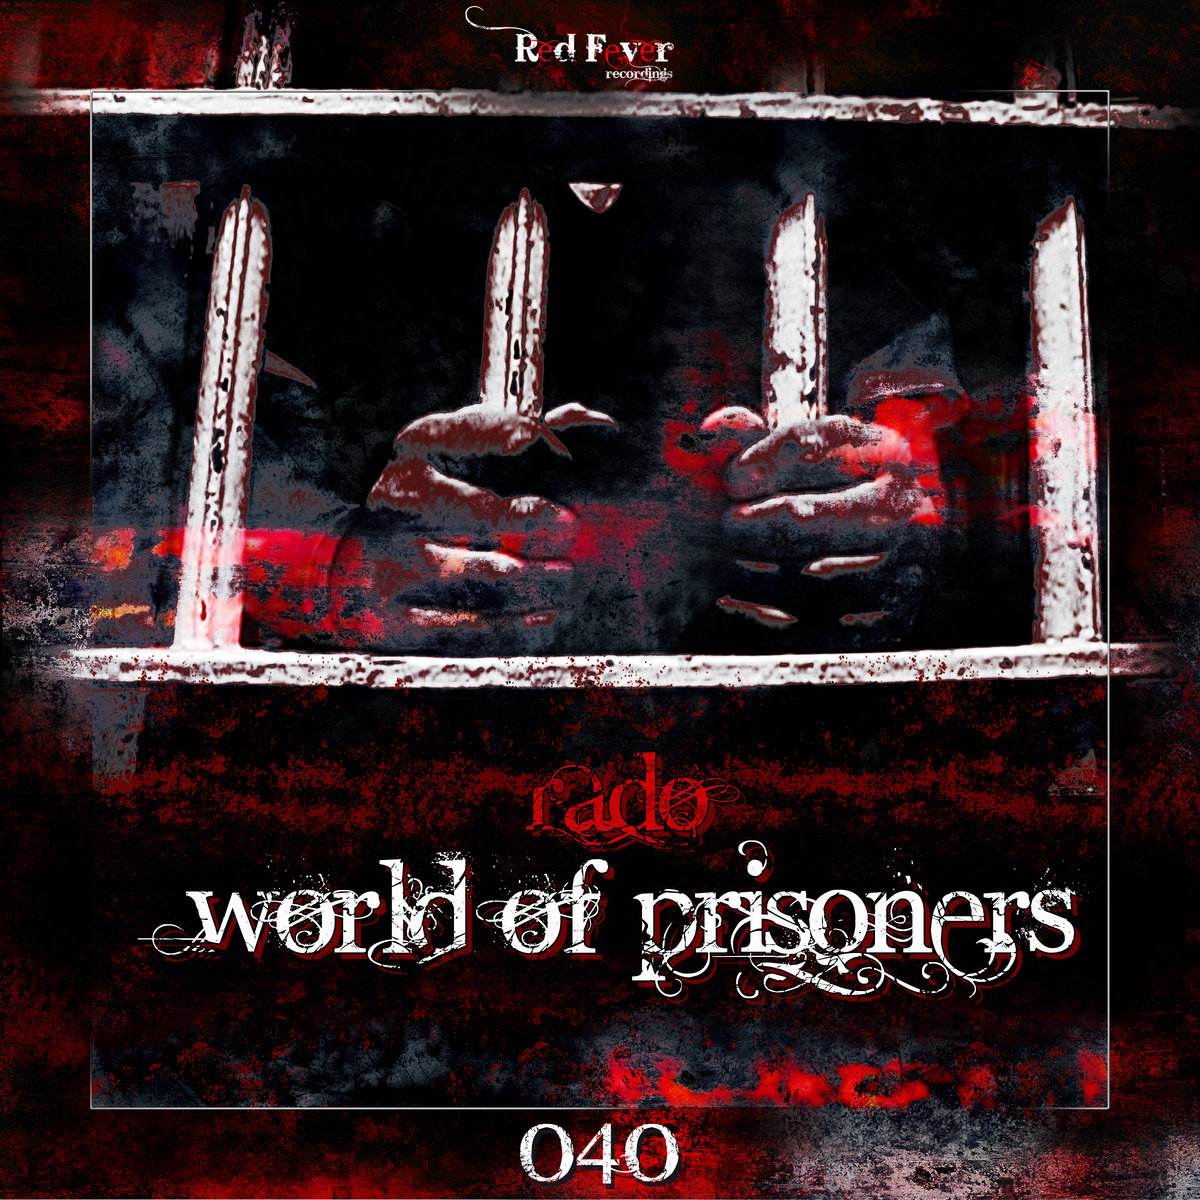 Rado - Double Weapon @ 'World Of Prisoners' album (electronic, adk)